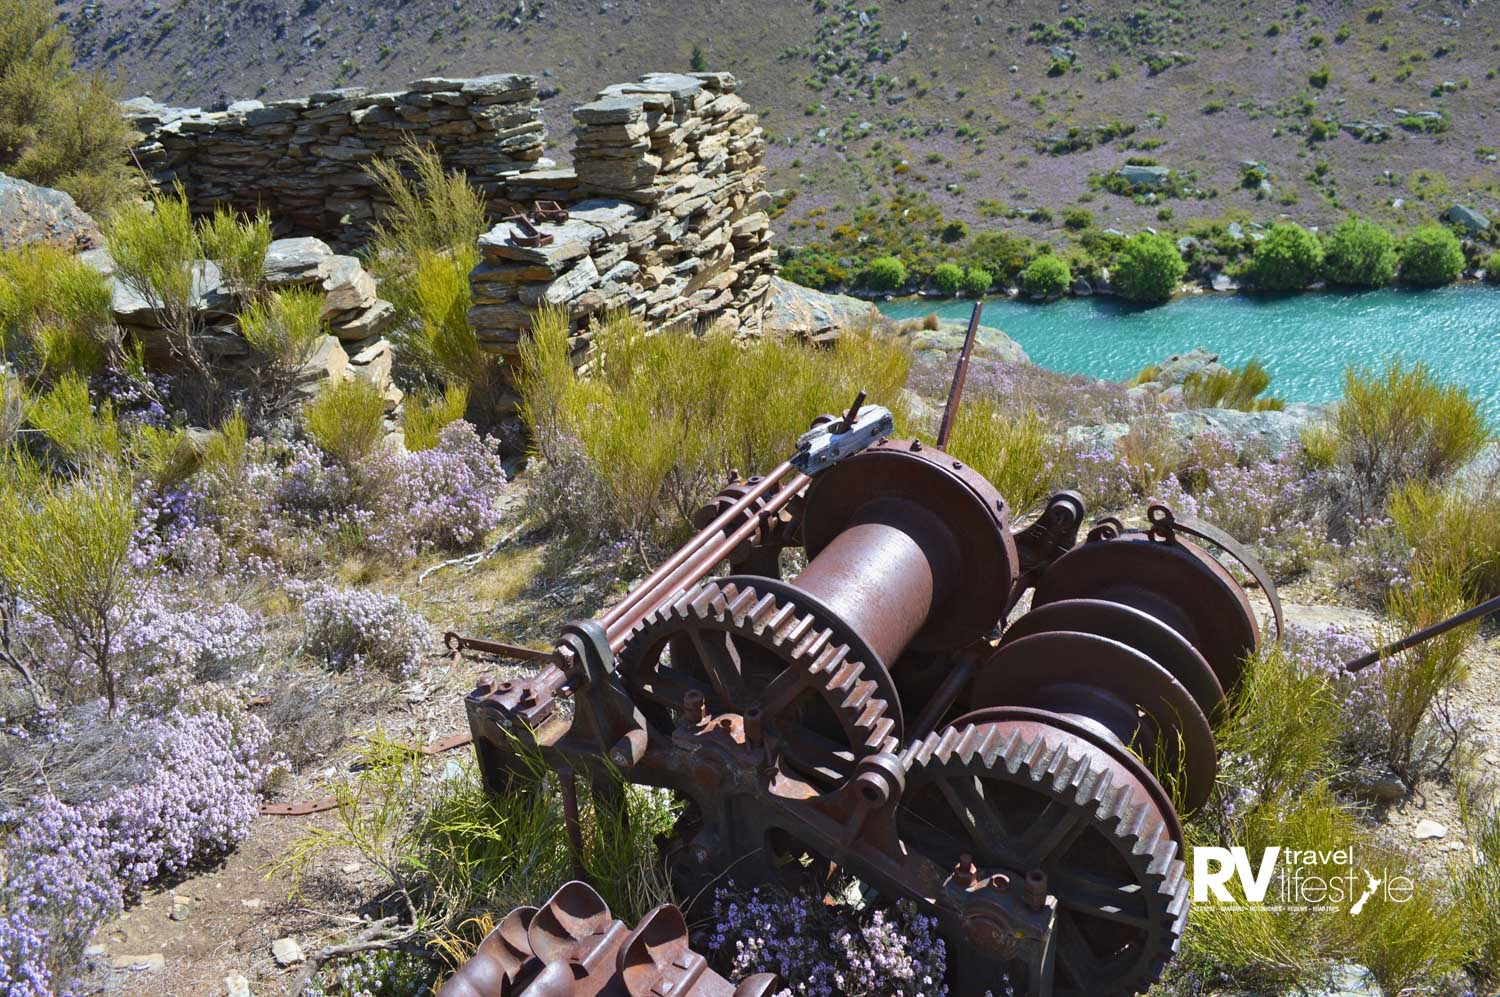 Historic relics lie scattered through the gorge (Clutha River Cruises)